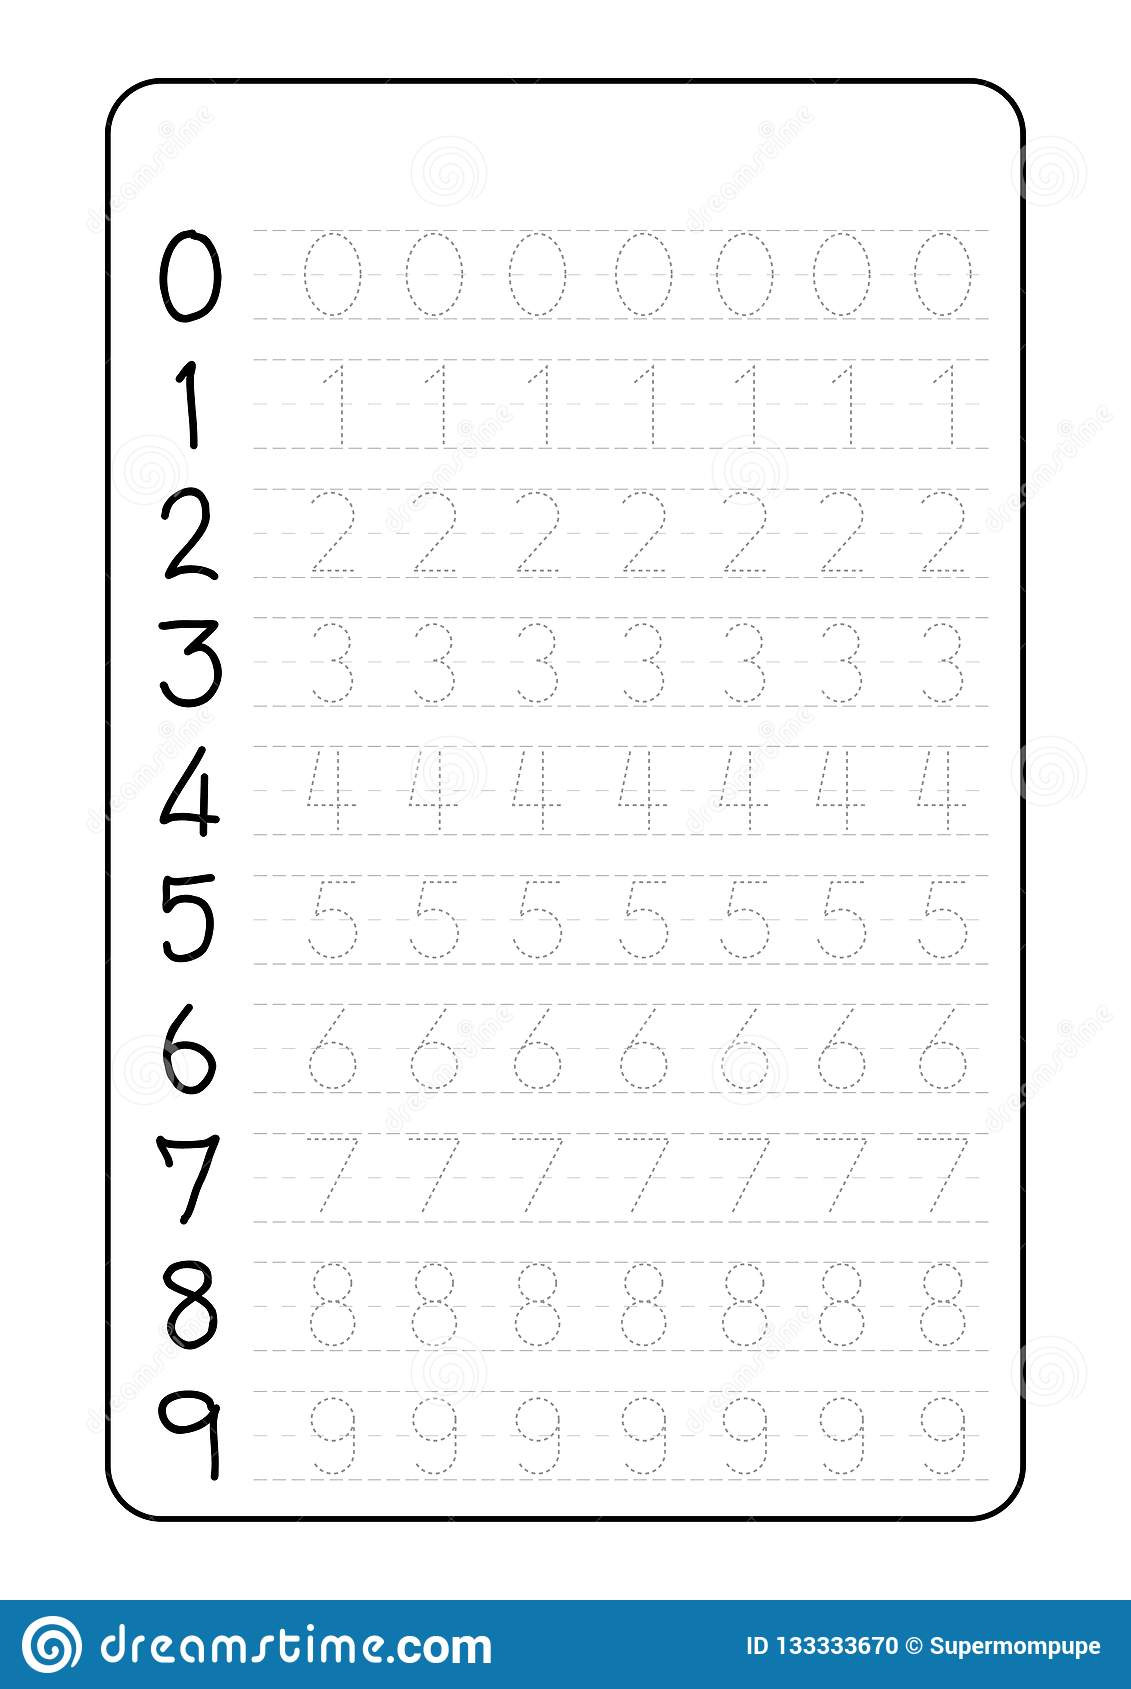 Tracing Letters and Numbers Worksheet Alphabet Letters Tracing Worksheet with Number Children